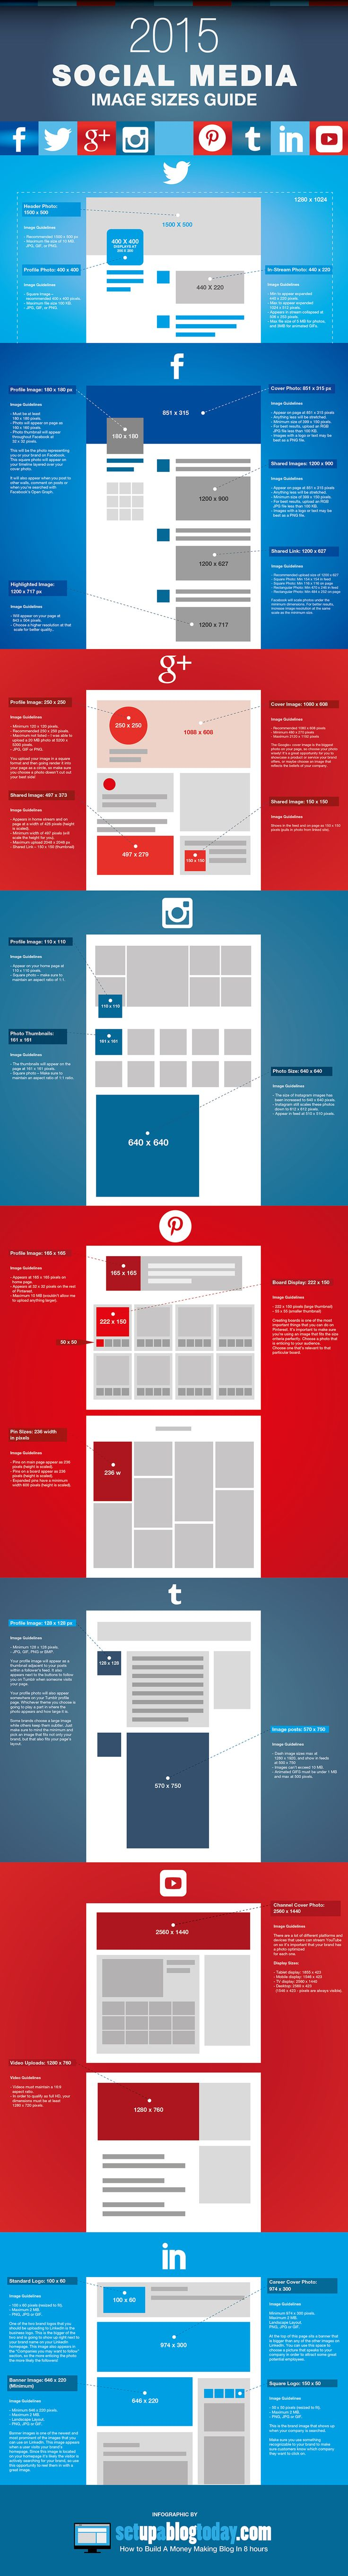 2015 Social Media Image Size Guide - @rebekahradice